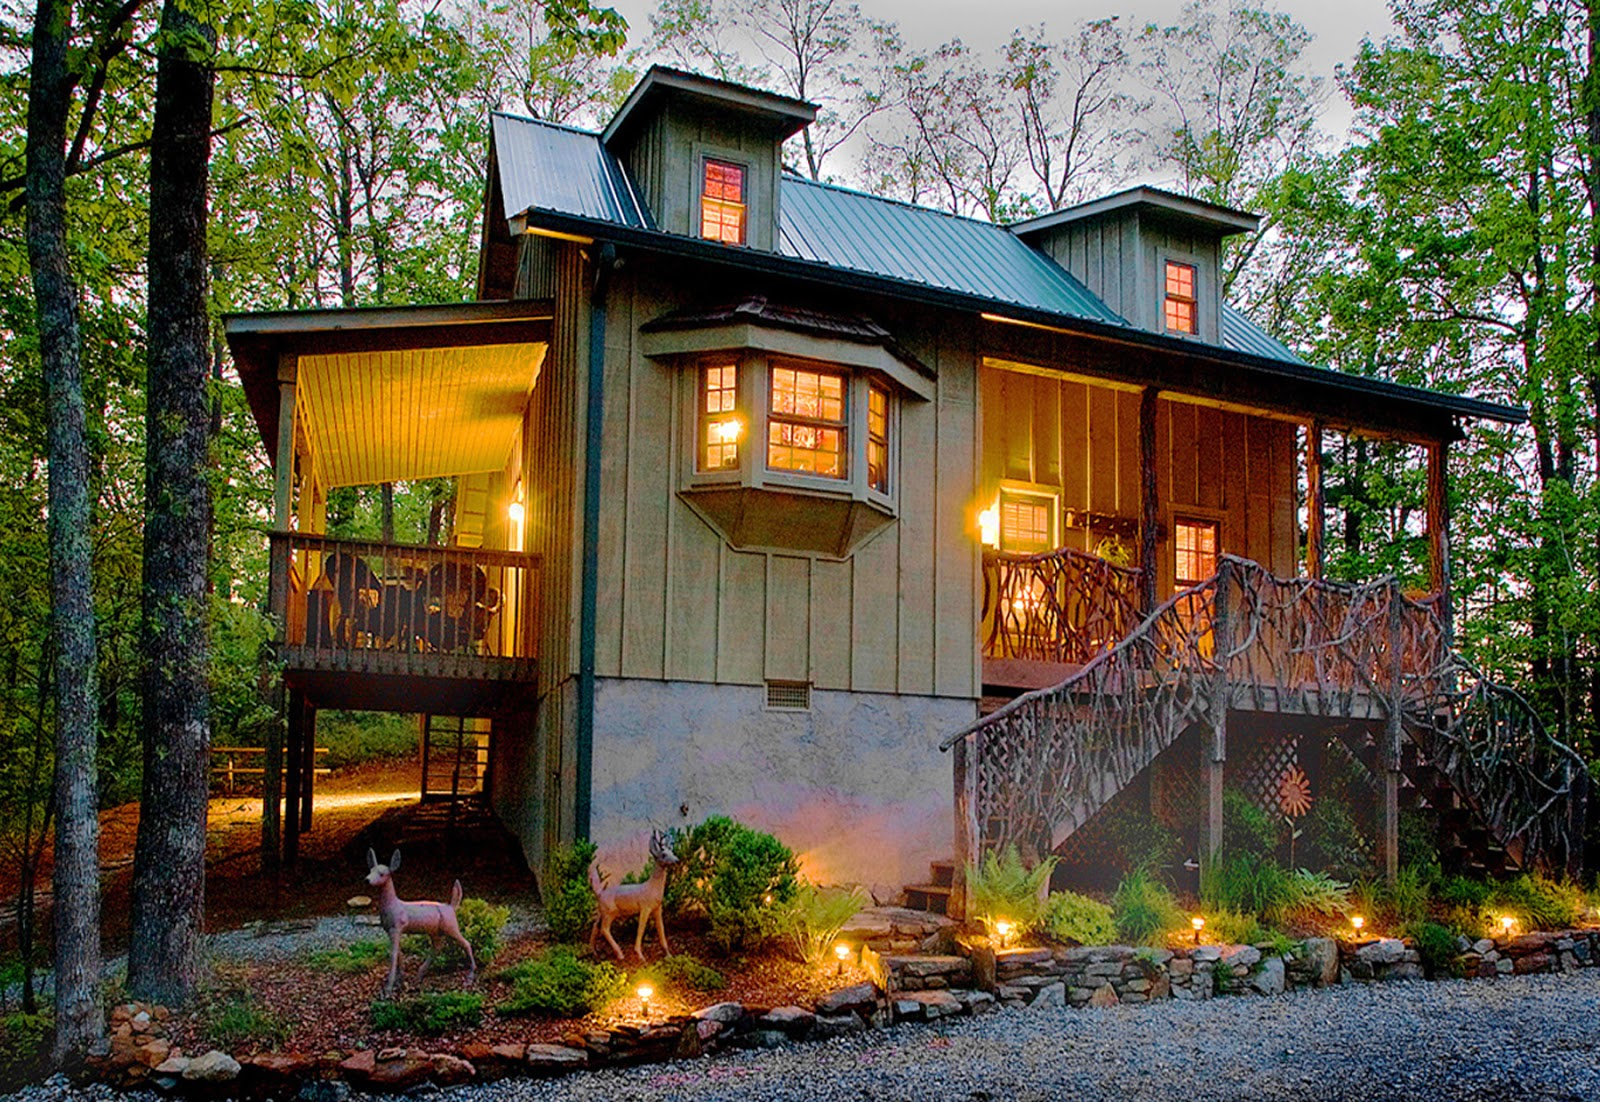 back garden weddings creek lodge at top missouri breakfast bear cabins branson chapel country bed tree and cabin rentals christmas